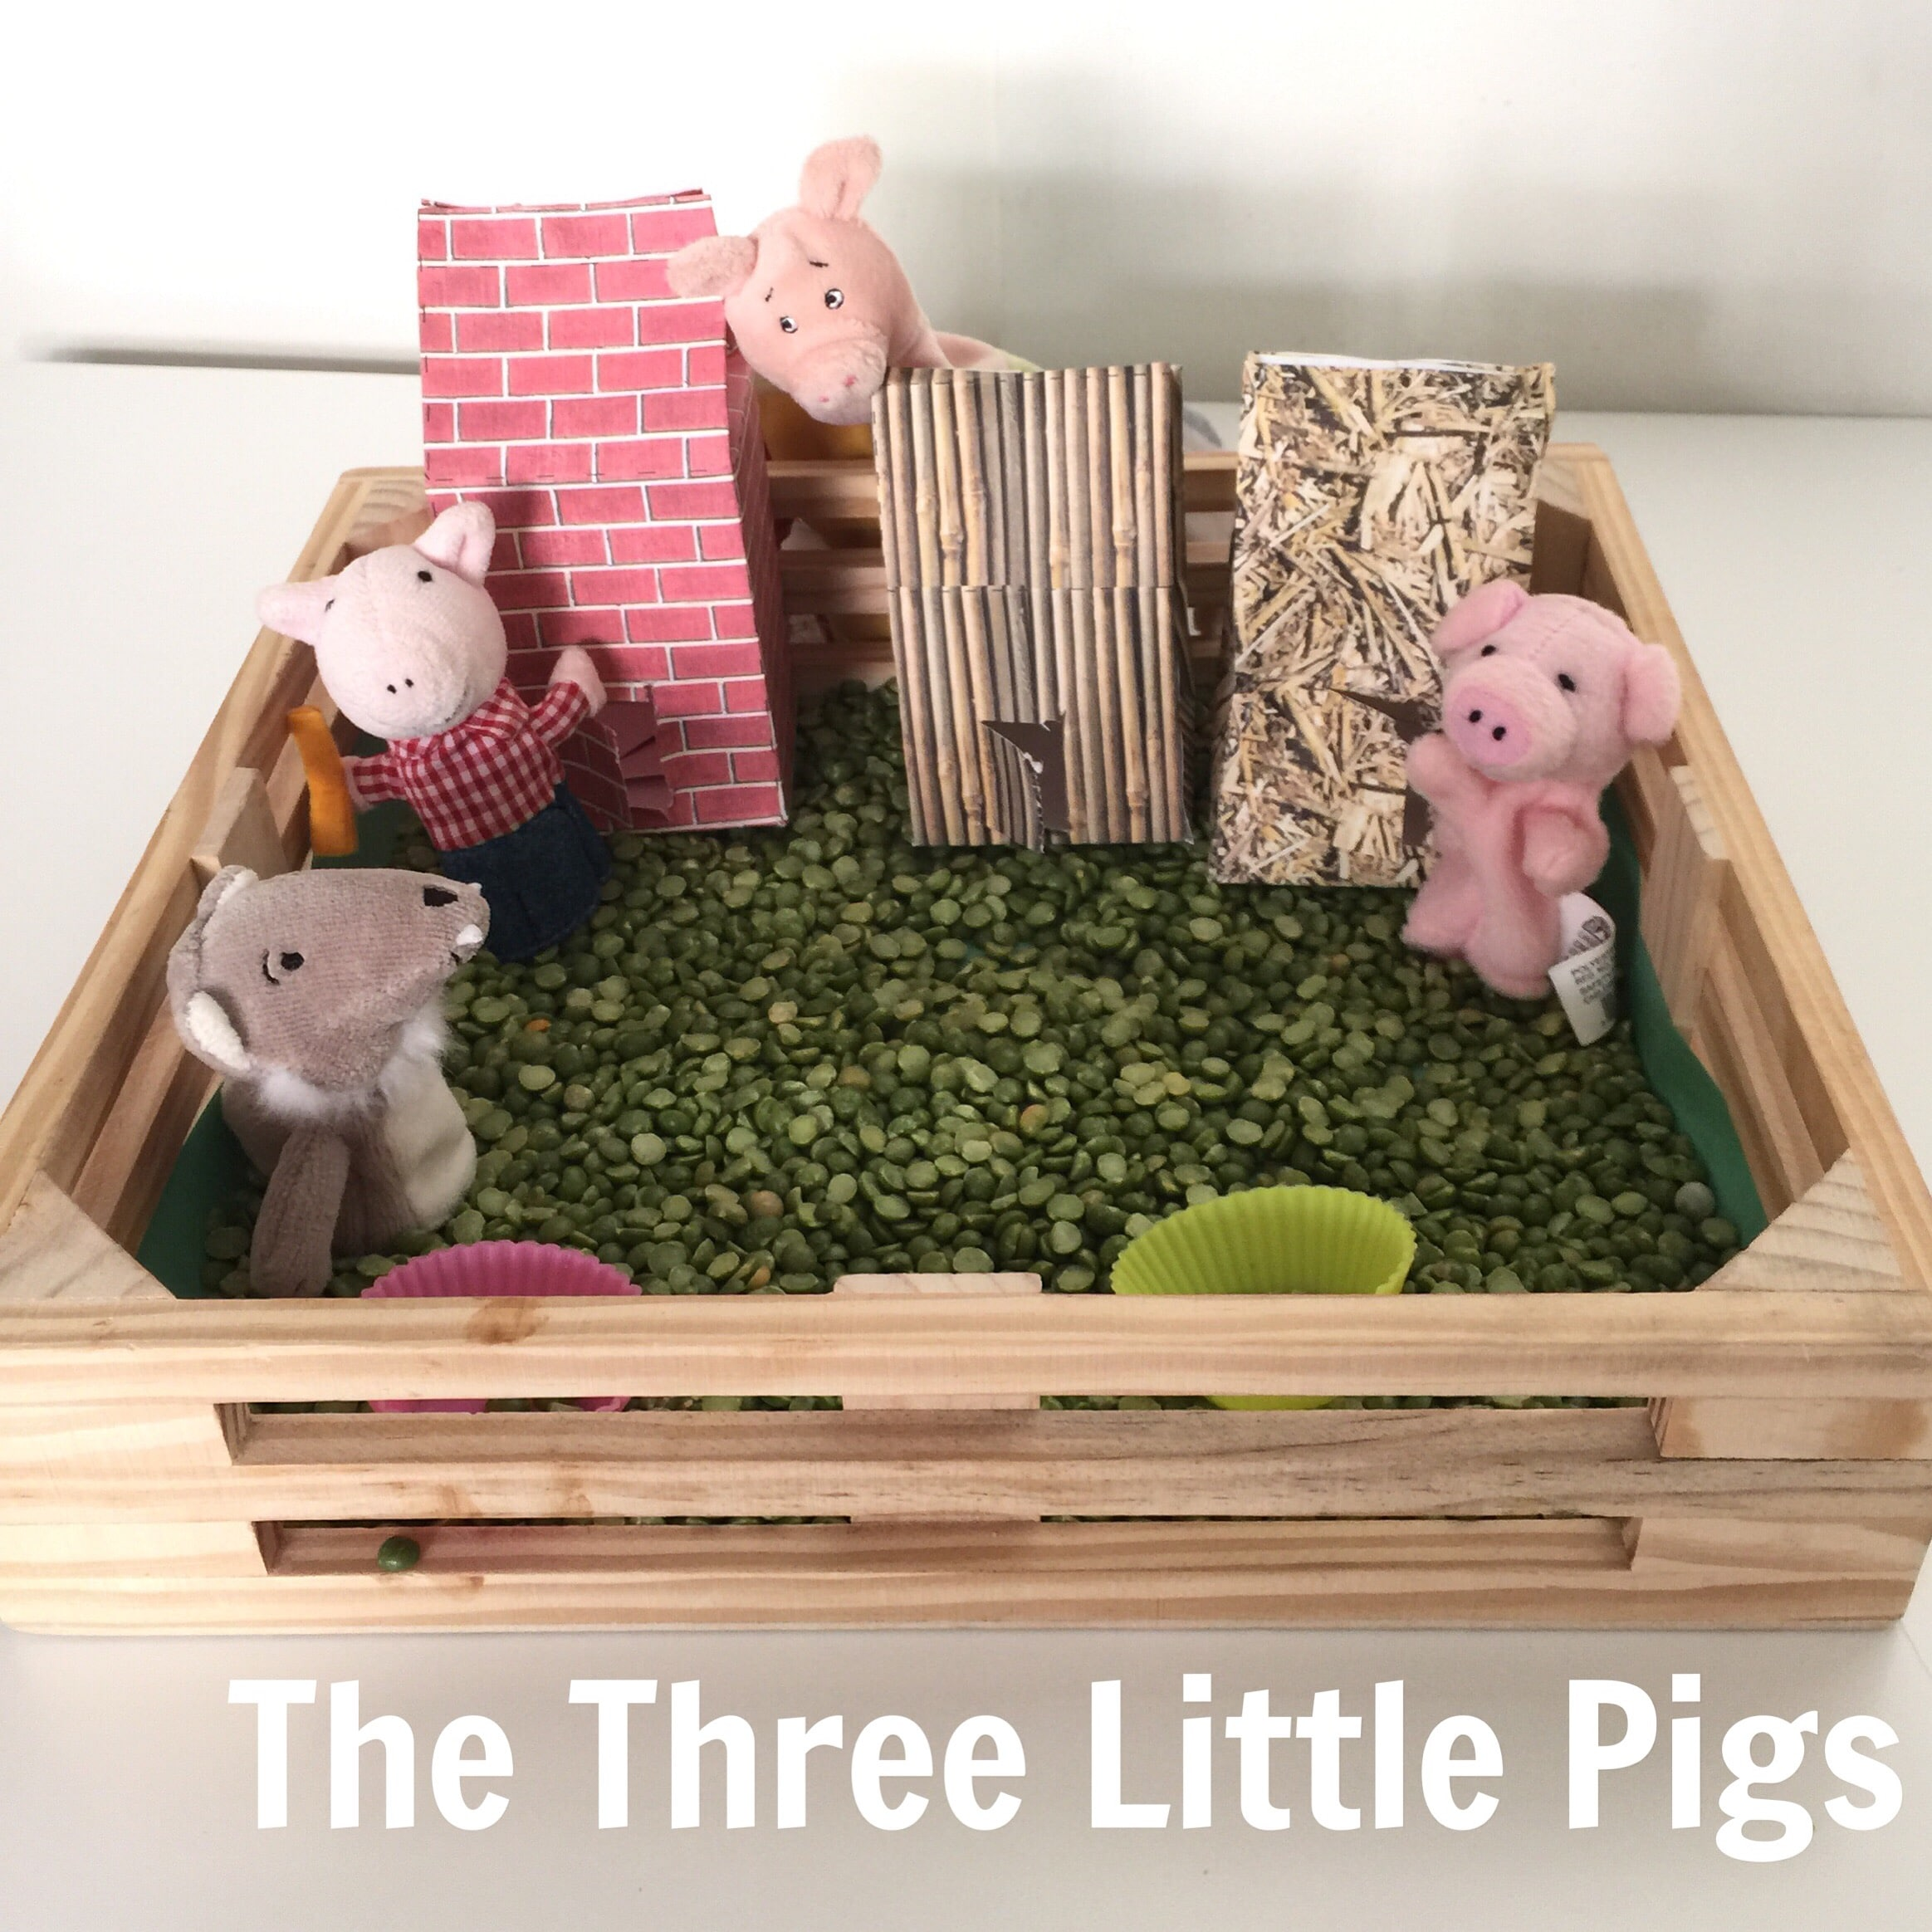 Bring the story of the three little pigs to life with this wonderful sensory bin perfect for toddlers, preschoolers and even older elementary kids!